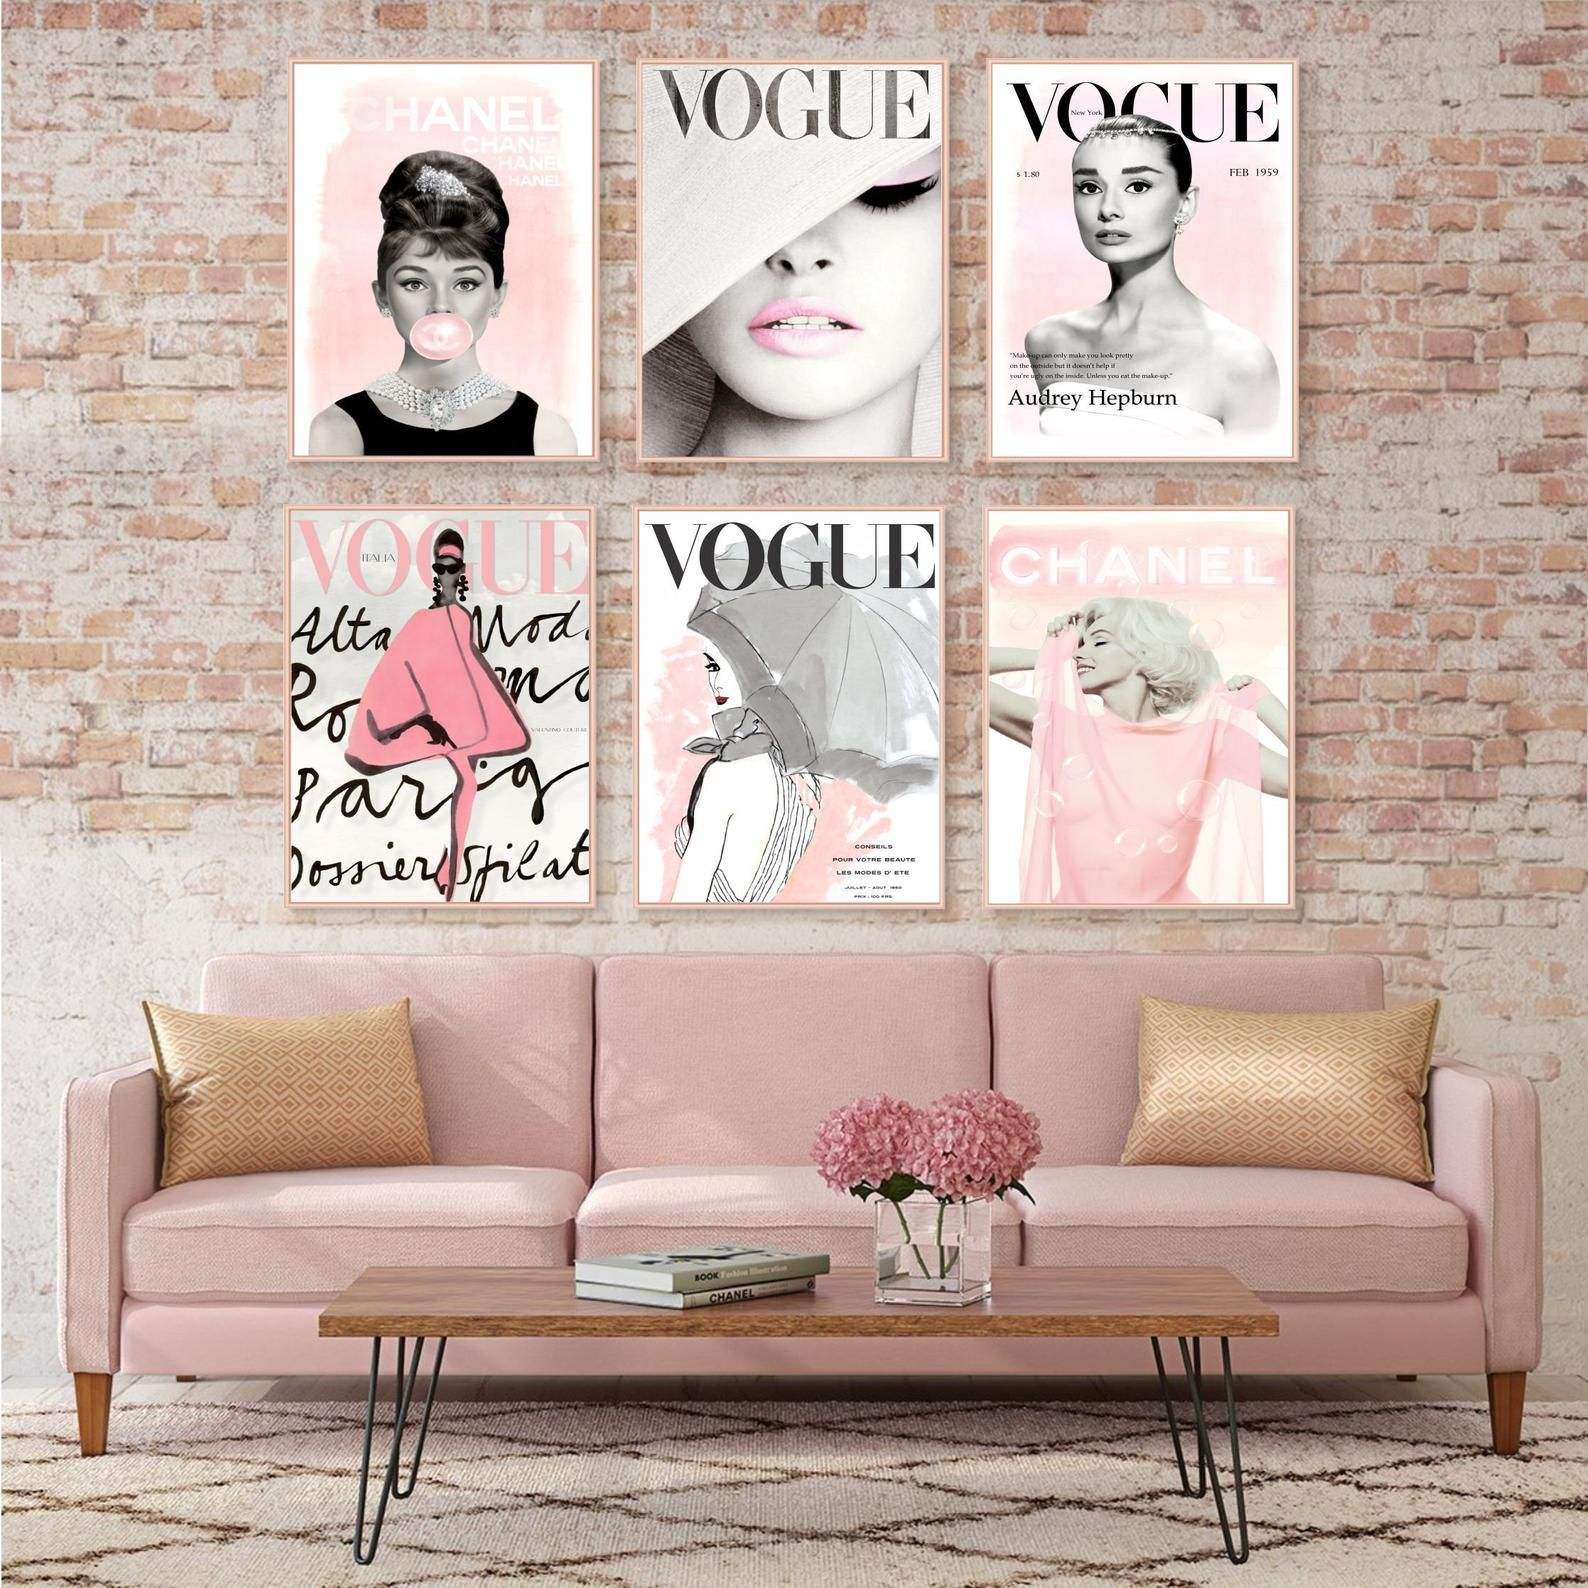 Fashion Wall Art Set Prints Vogue Posters Chanel Prints Etsy Fashion Wall Art Salon Interior Design Nail Salon Interior Design